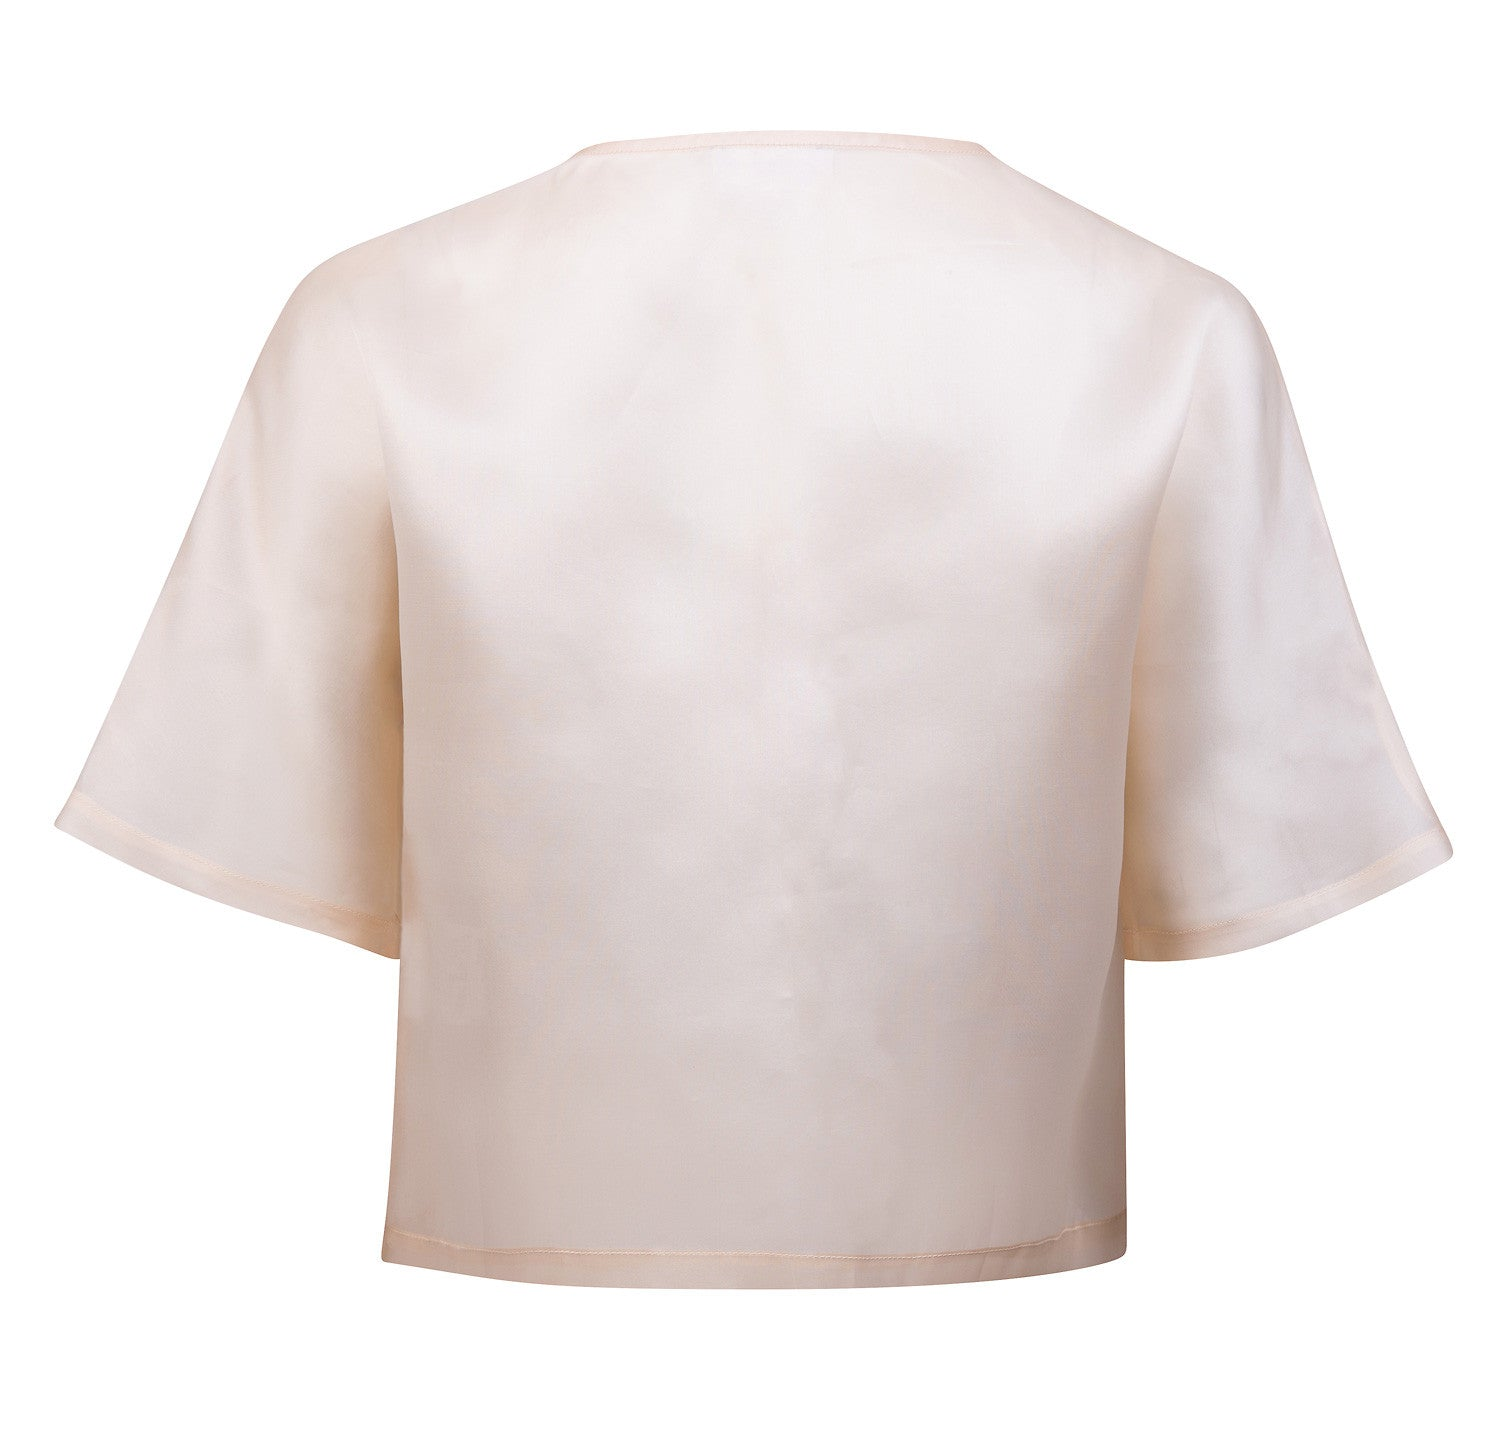 Bi-color double pleats organza top